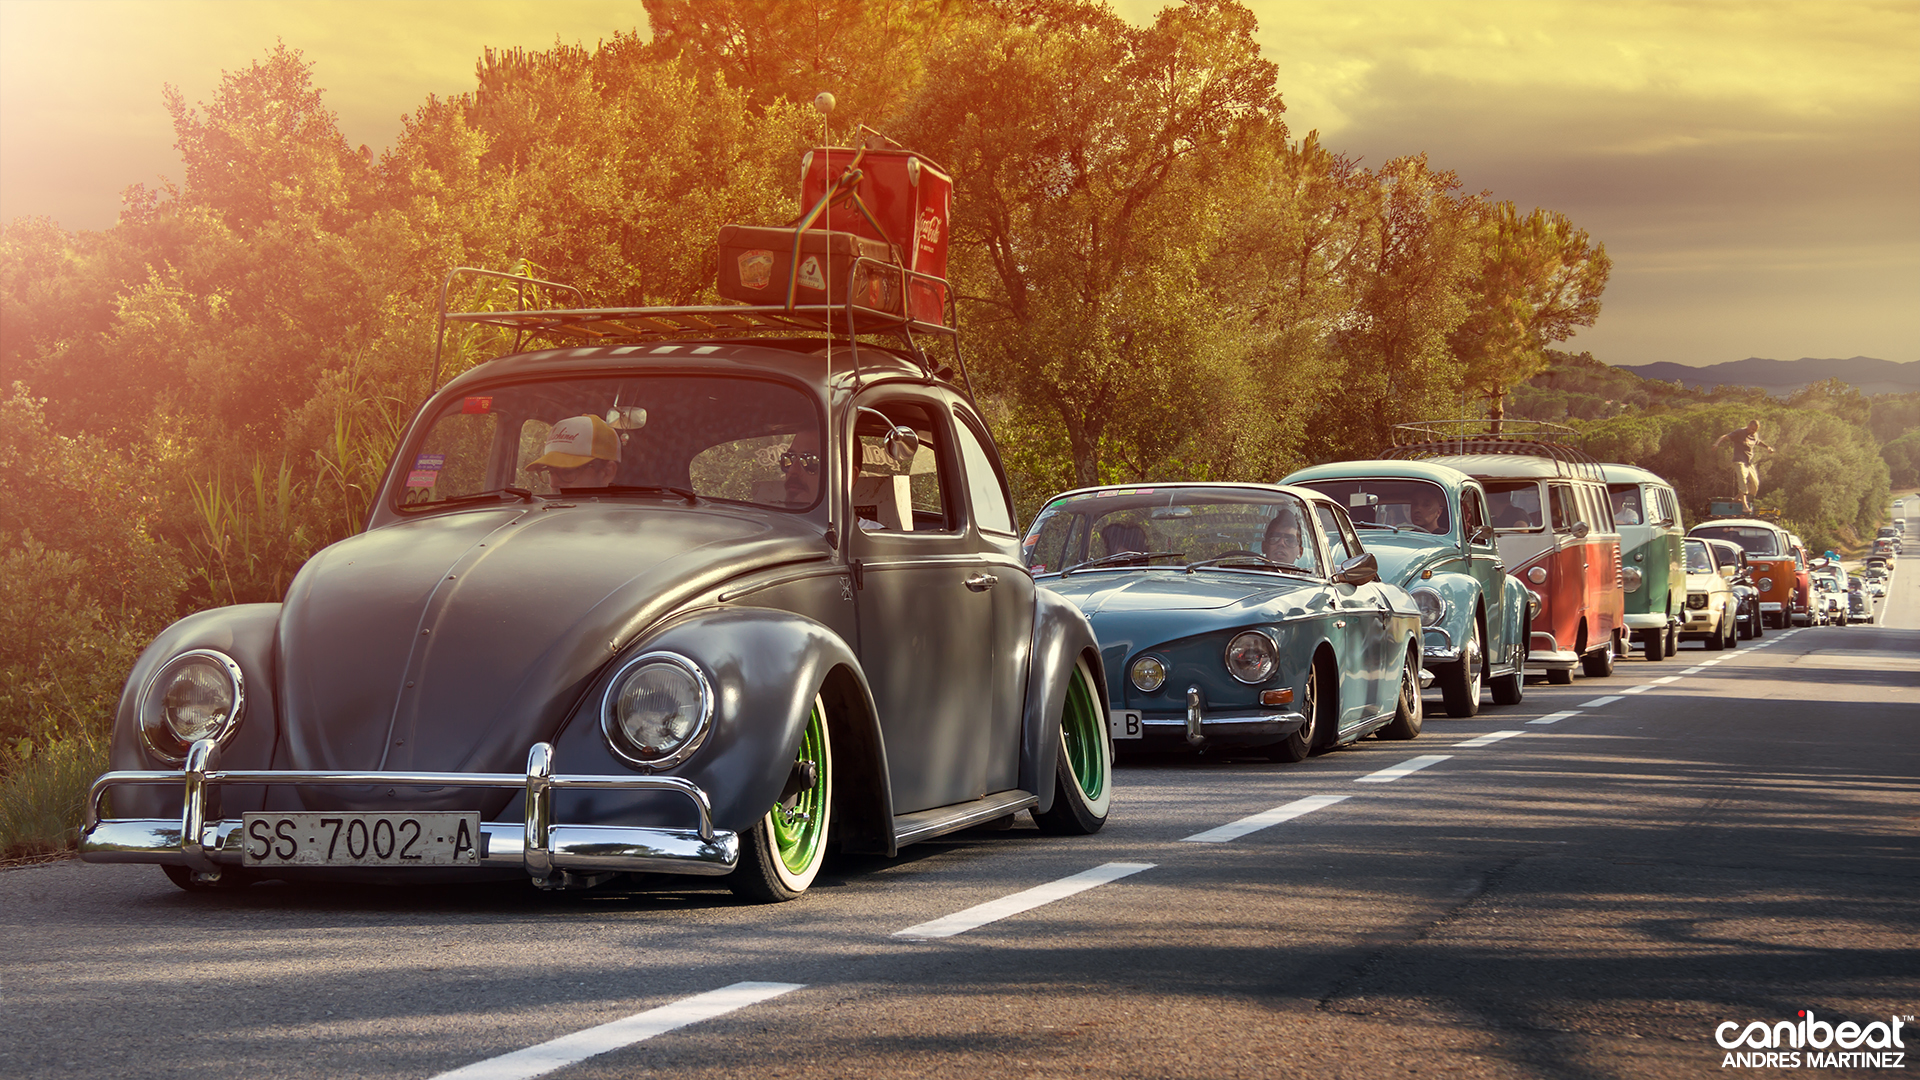 download Volkswagen Fusca Hd Wallpaper PC Android iPhone and 1920x1080